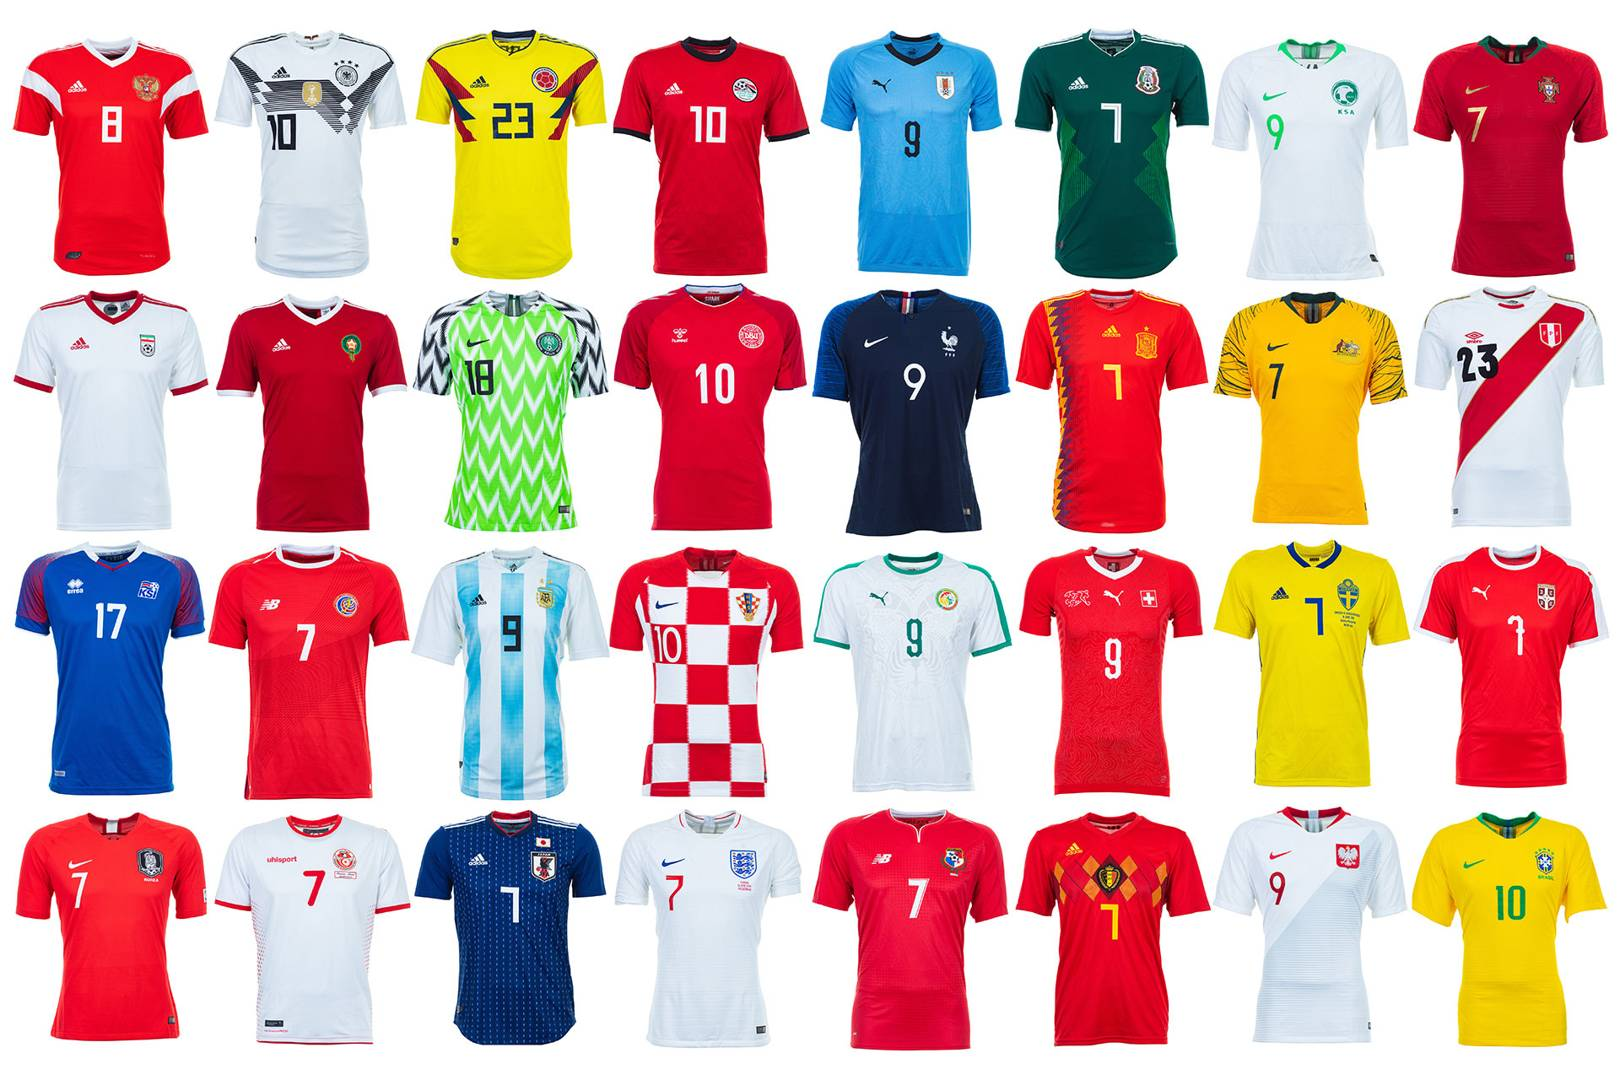 9e14d13507e World Cup 2018 kits ranked: from worst to best | British GQ